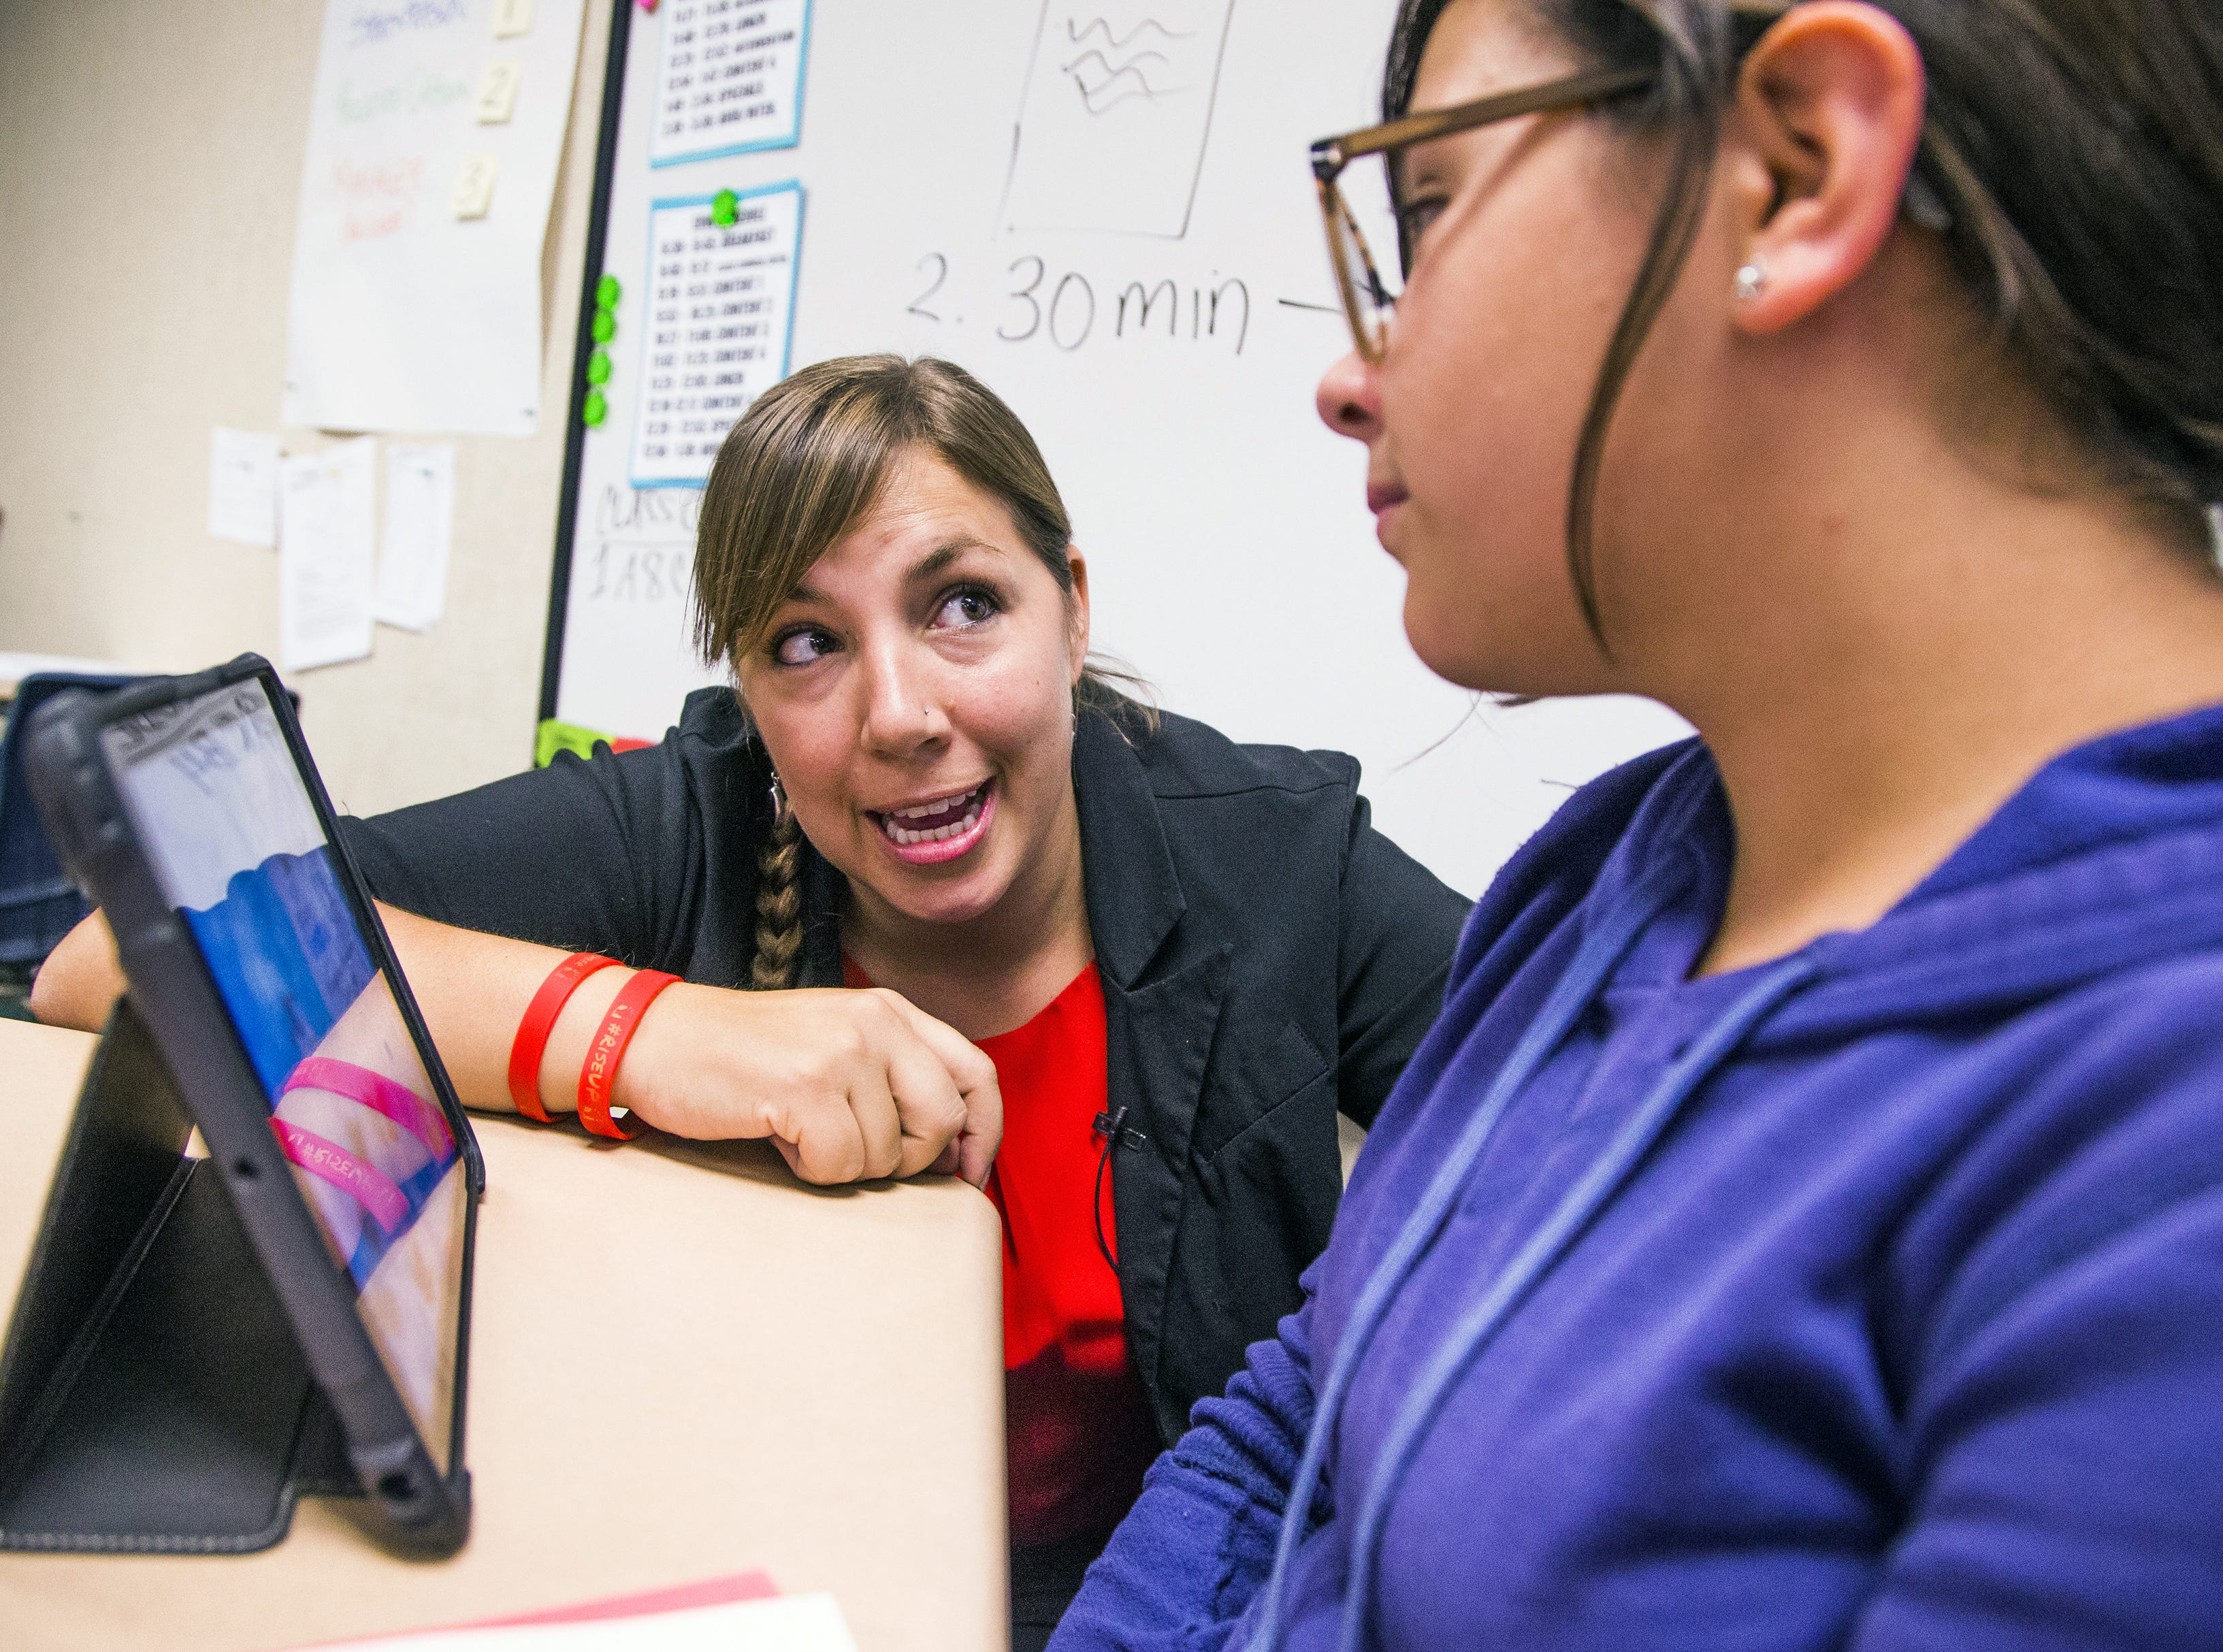 Rebecca Garelli helps Victoria Emery, 12, during her 6th grade class at Sevilla West Elementary School in Phoenix, at 3:04 pm, Monday, September 17, 2018. Garelli has been one of the leaders of the #RedforEd movement, demanding increased funding for education in Arizona.